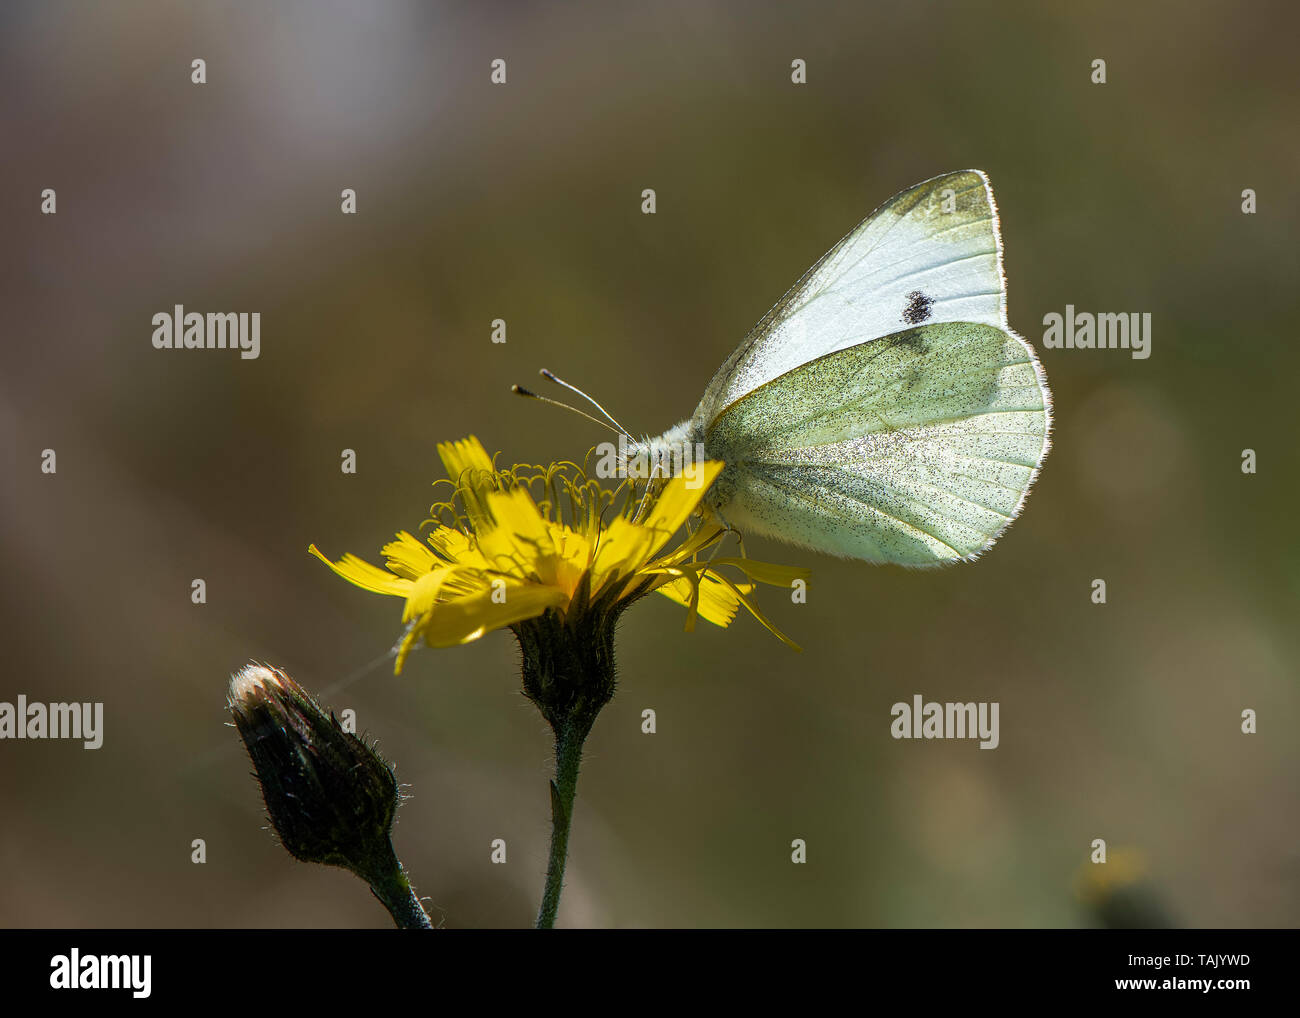 Large White nectaring, Dumfries, Dumfries and Galloway, S W Scotland - Stock Image